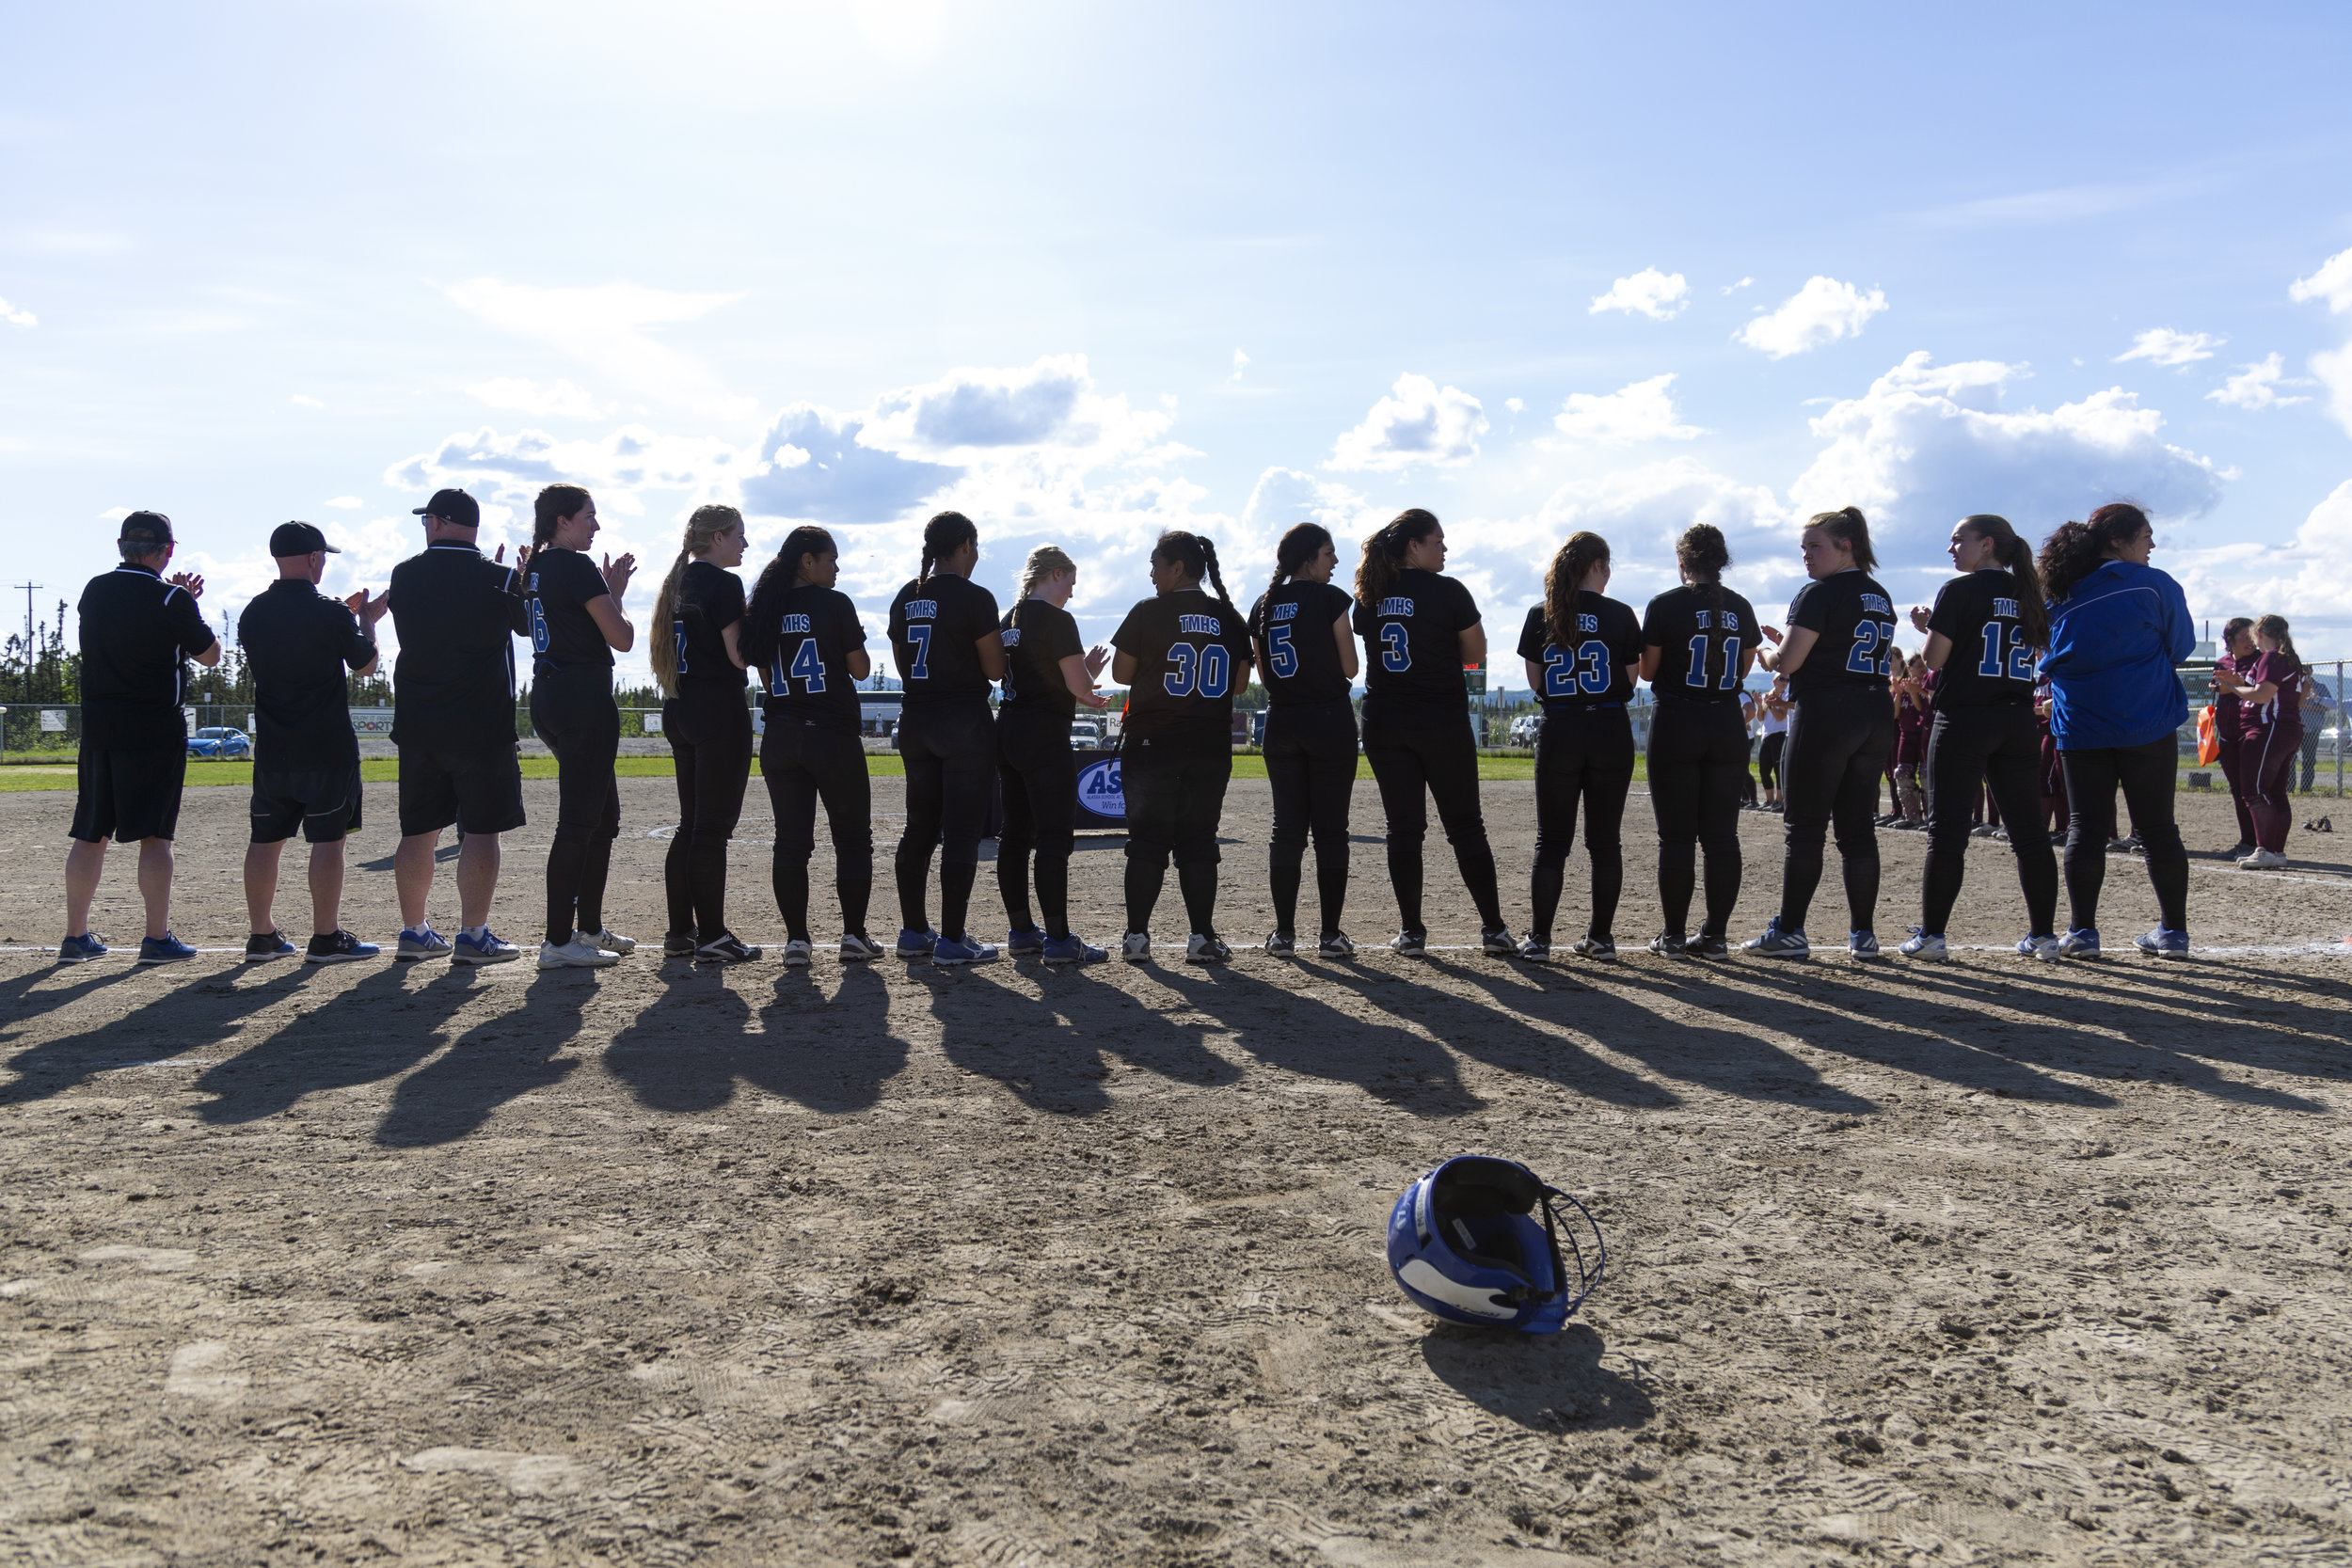 The Thunder Mountain Falcons softball team lines up for the award ceremony at the ASAA Division II state softball tournament in Fairbanks where they won the state championship for the third year in a row. Sarah Manriquez/Juneau Empire